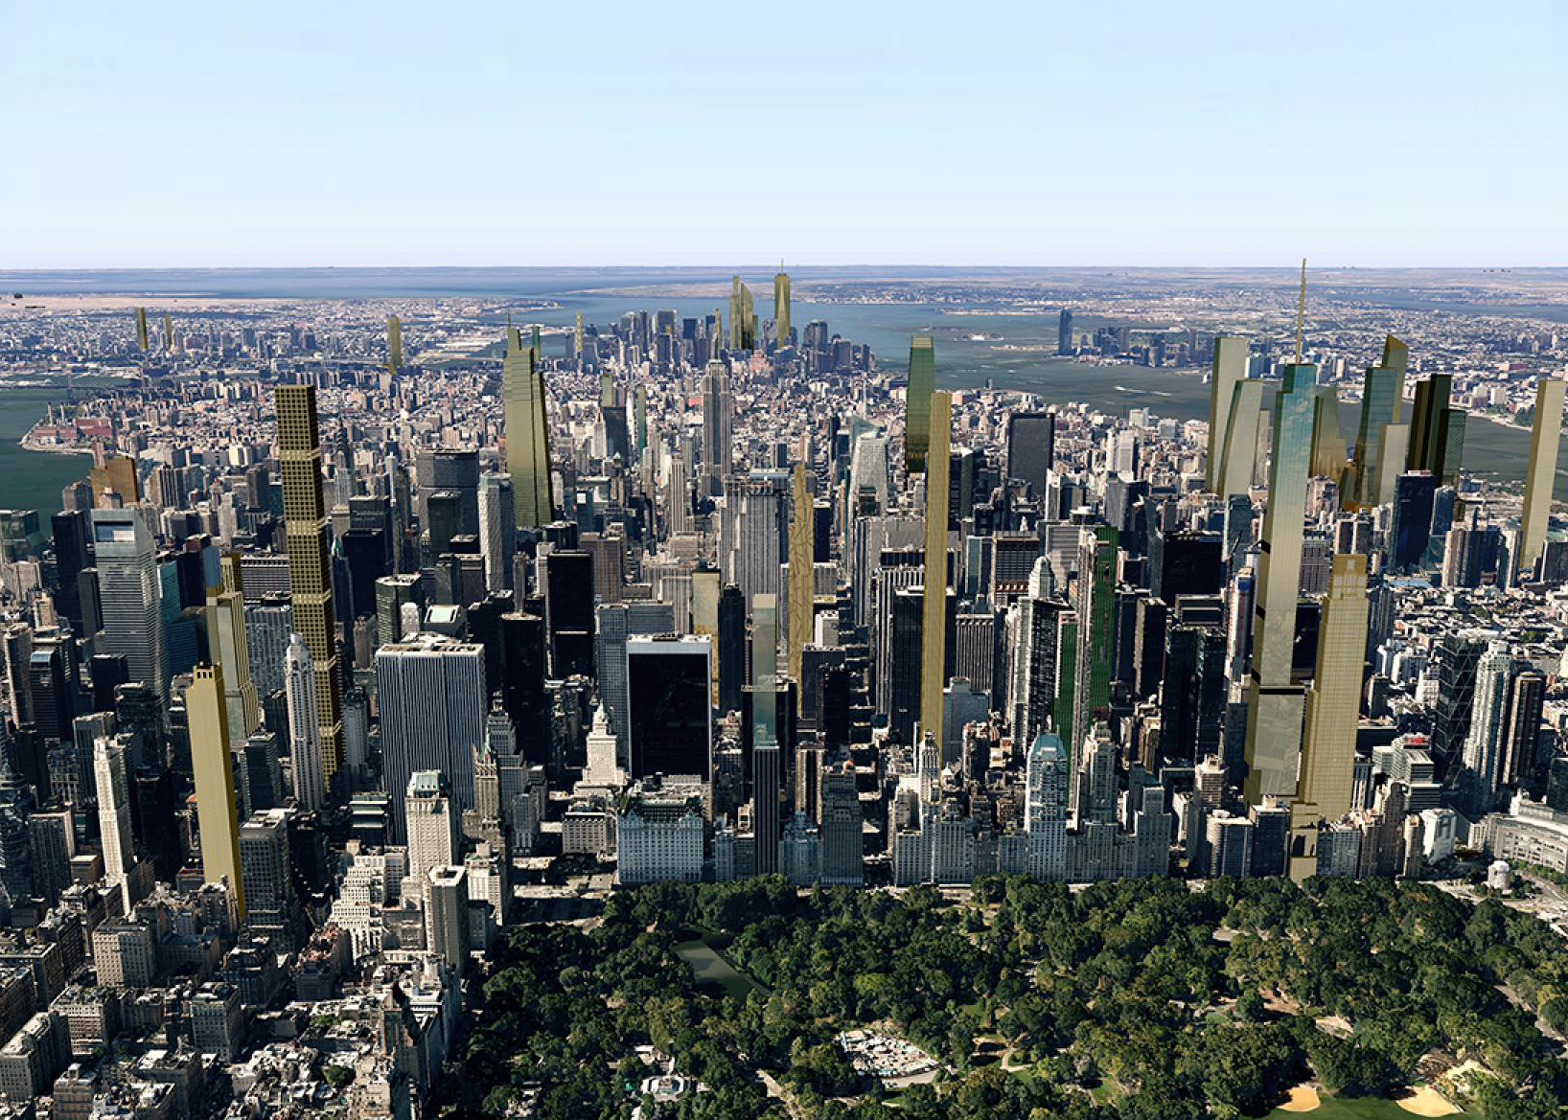 A visualisation of the New York skyline around Central Park in 2018, when many of the city's new tall skyscrapers will be complete. Image by CityRealty